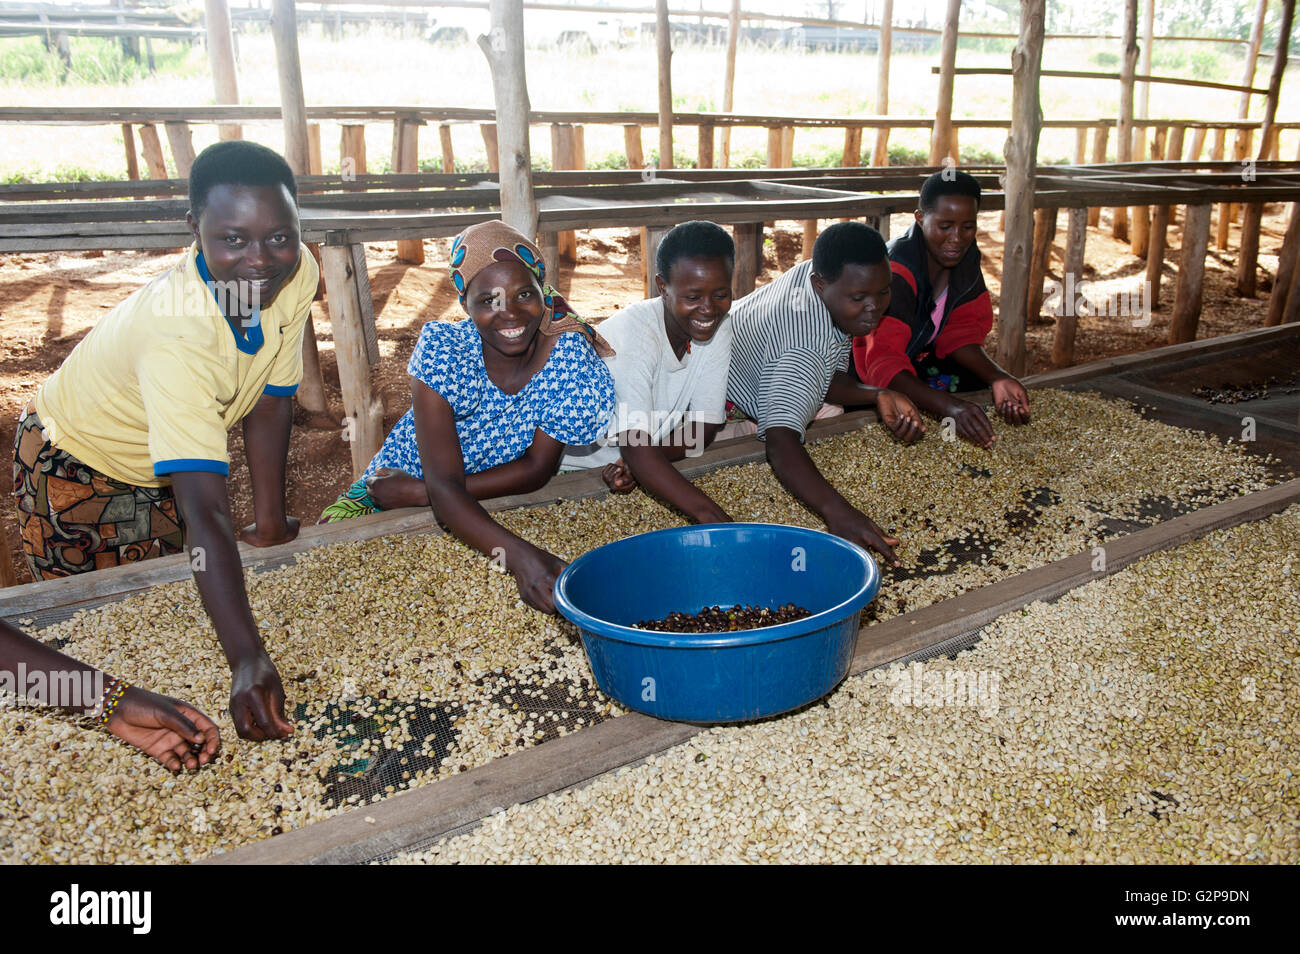 Arabica-kaffee Aus Thailand Ernte Workers Sorting Coffee Beans Stockfotos And Workers Sorting